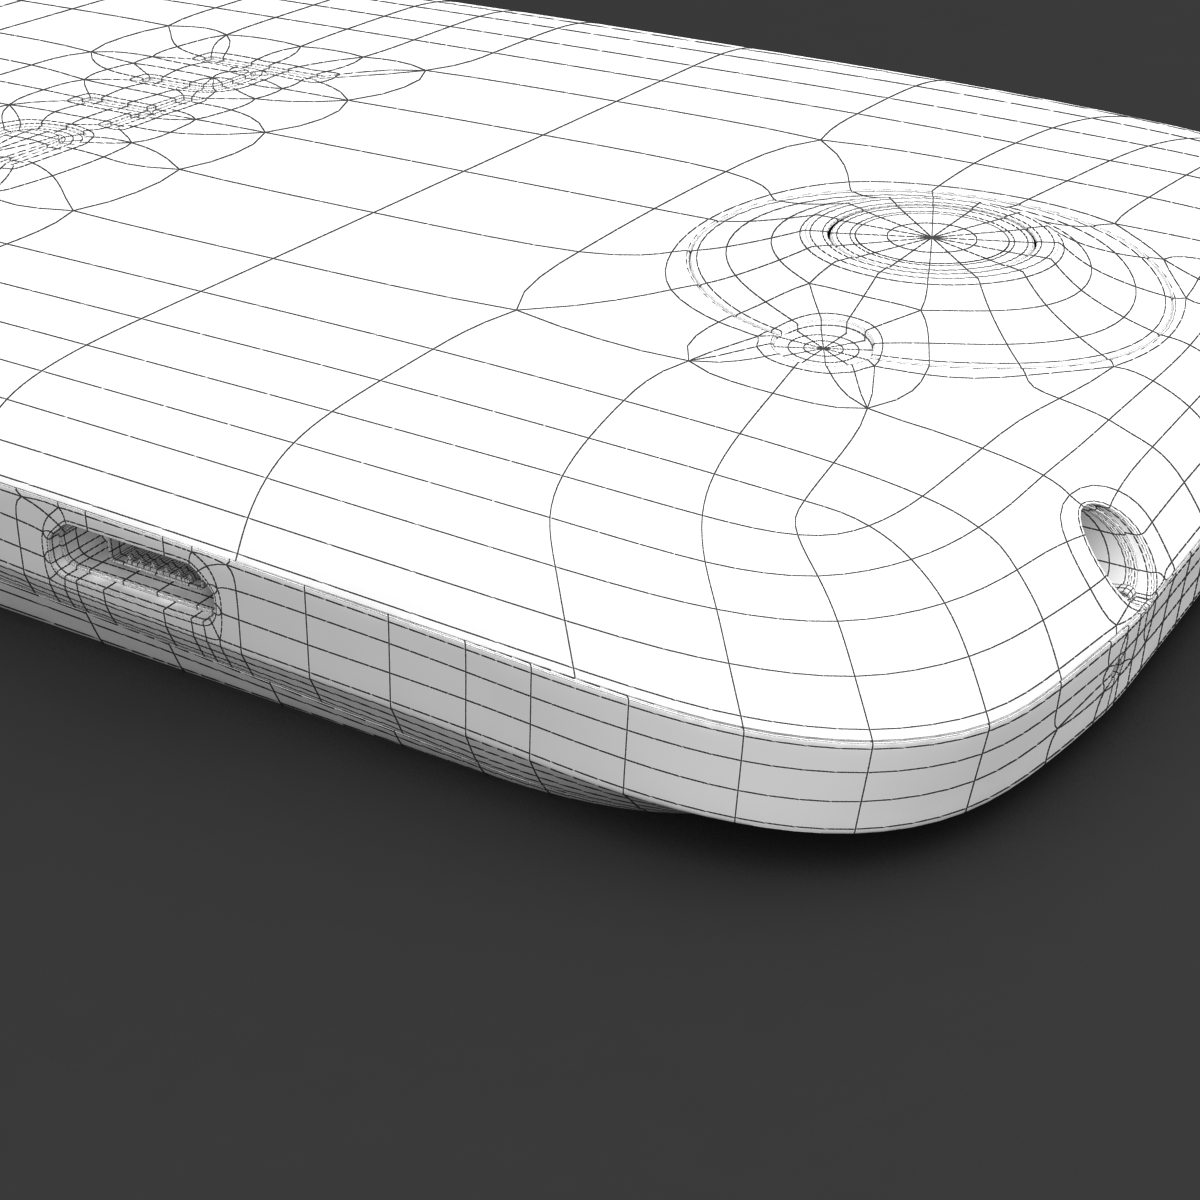 htc one x+ black and white 3d model 3ds max fbx c4d lwo obj 151481